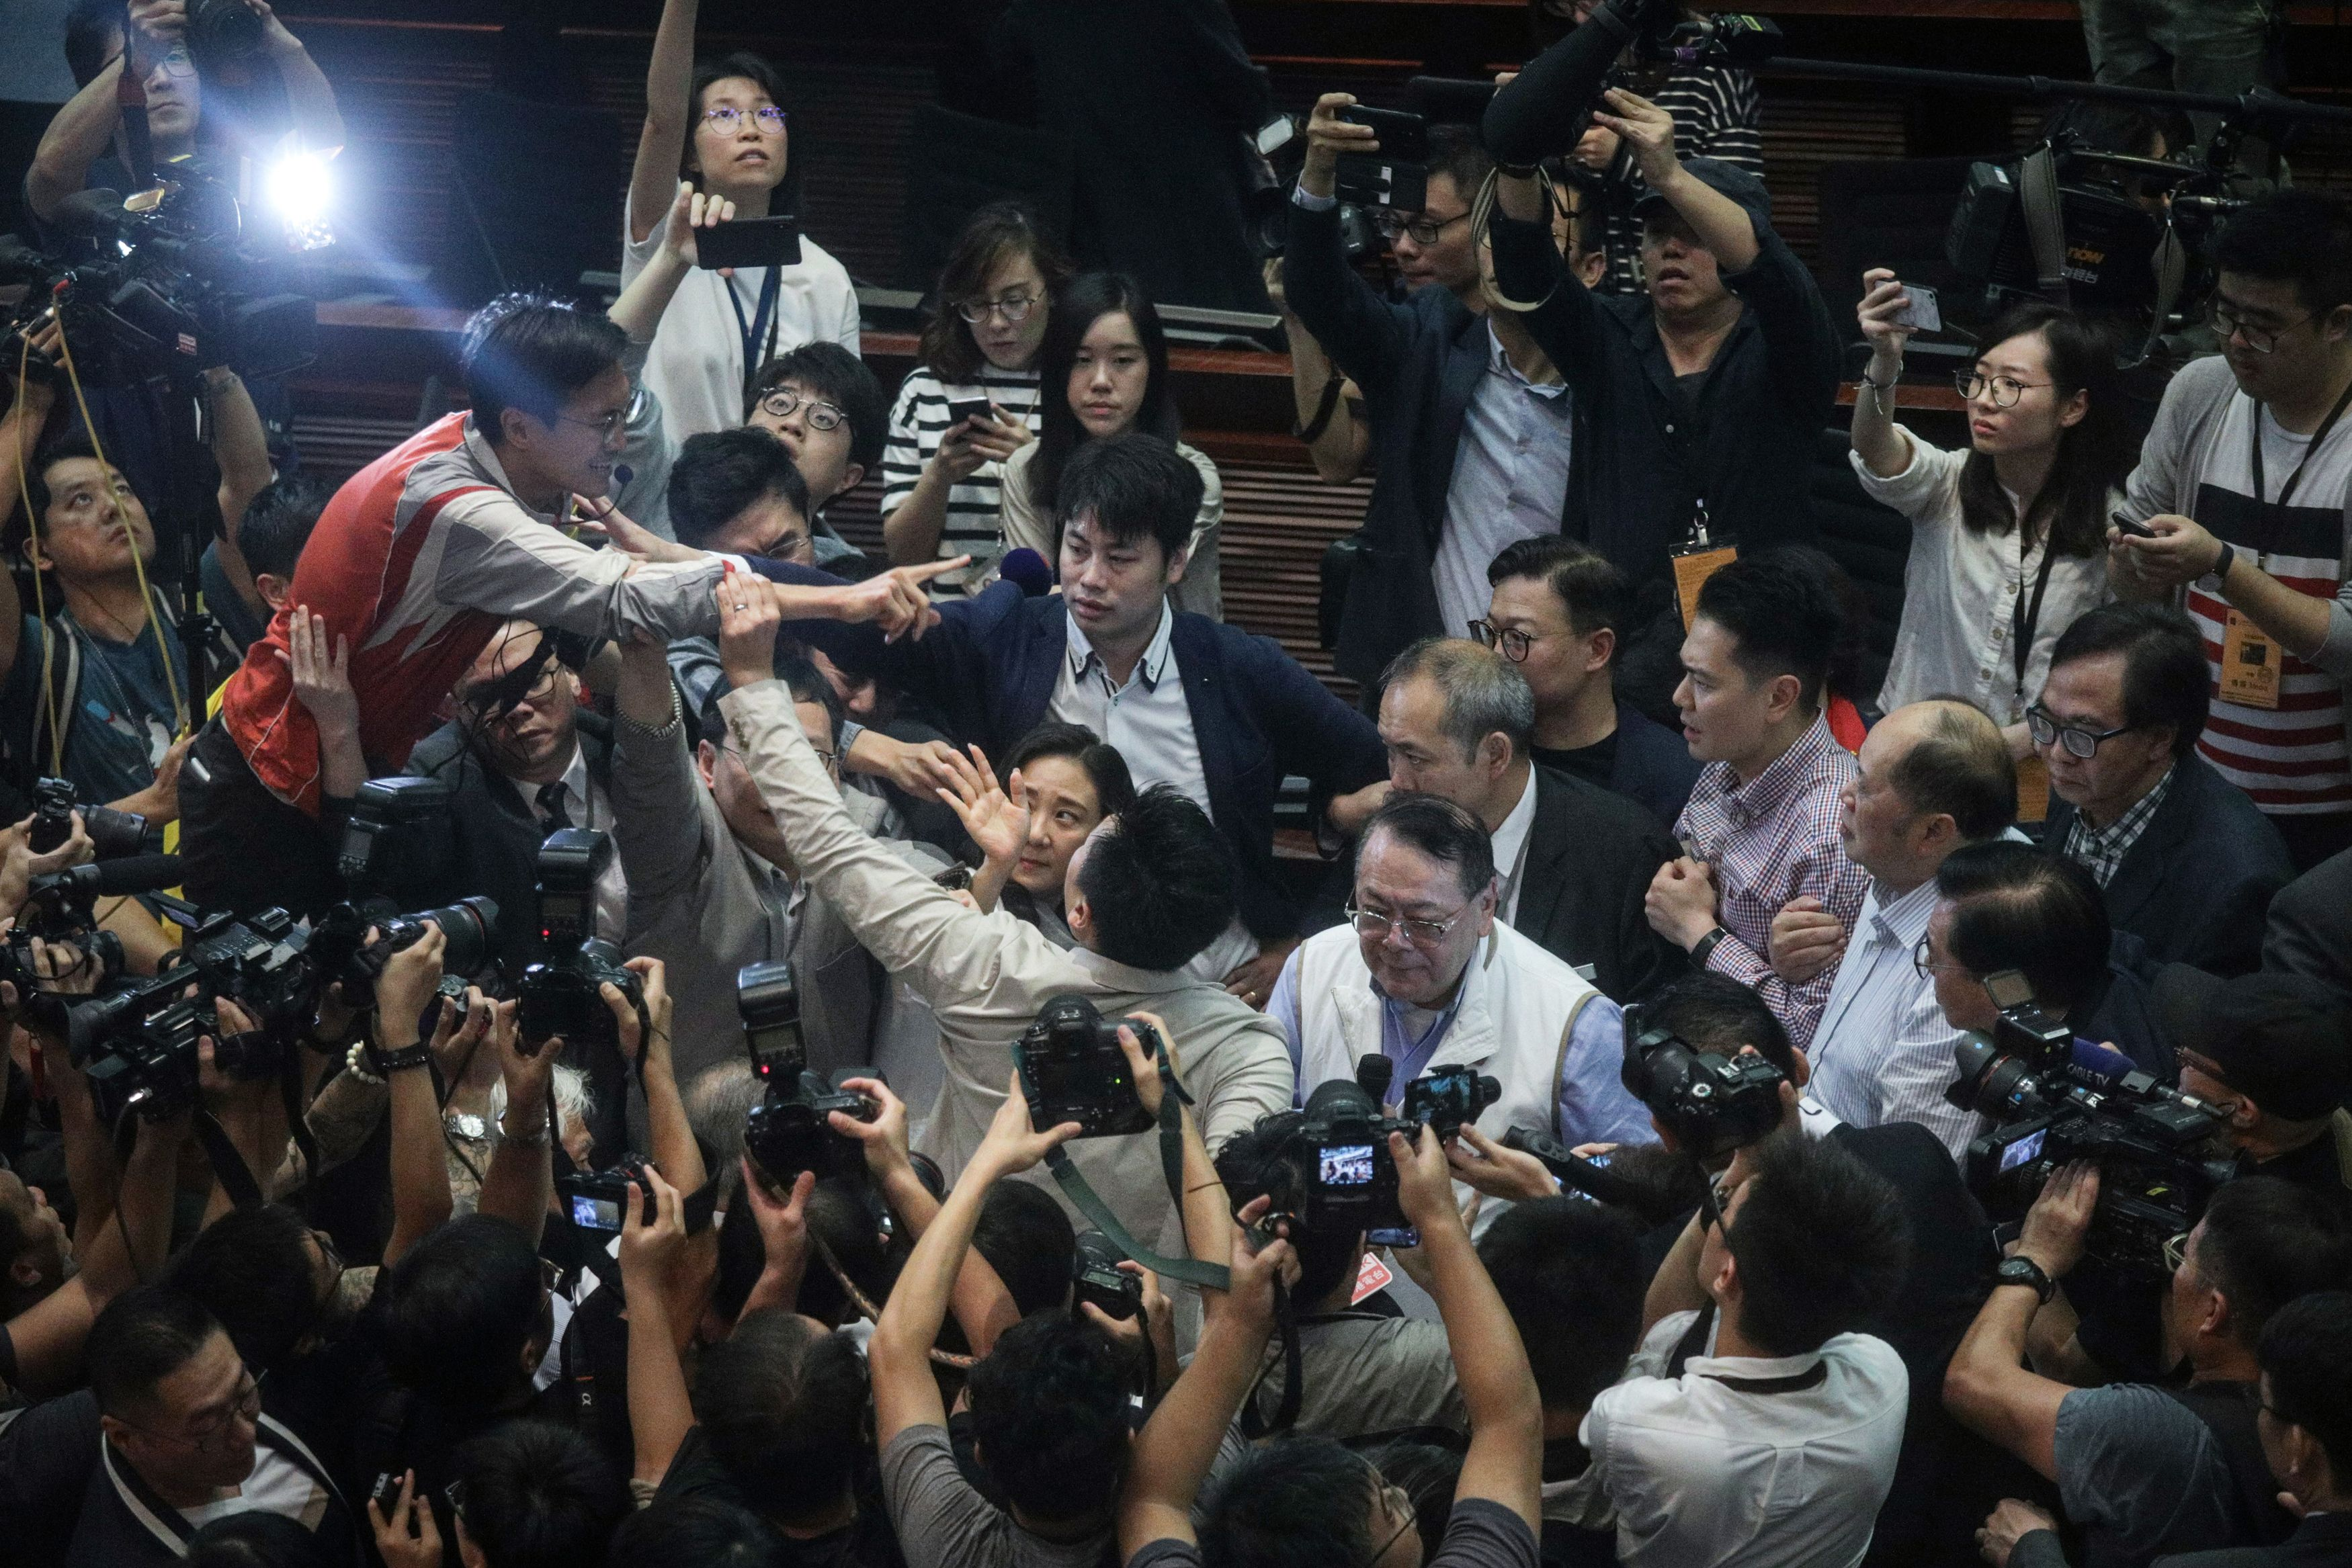 Hong Kong pro-Beijing lawmaker Abraham Shek (centre right in white vest) is escorted from a legislative meeting after scuffles broke out between pro-Beijing and pro-democracy lawmakers over the proposed extradition law in the Legislative Council in Hong Kong on May 11, 2019.